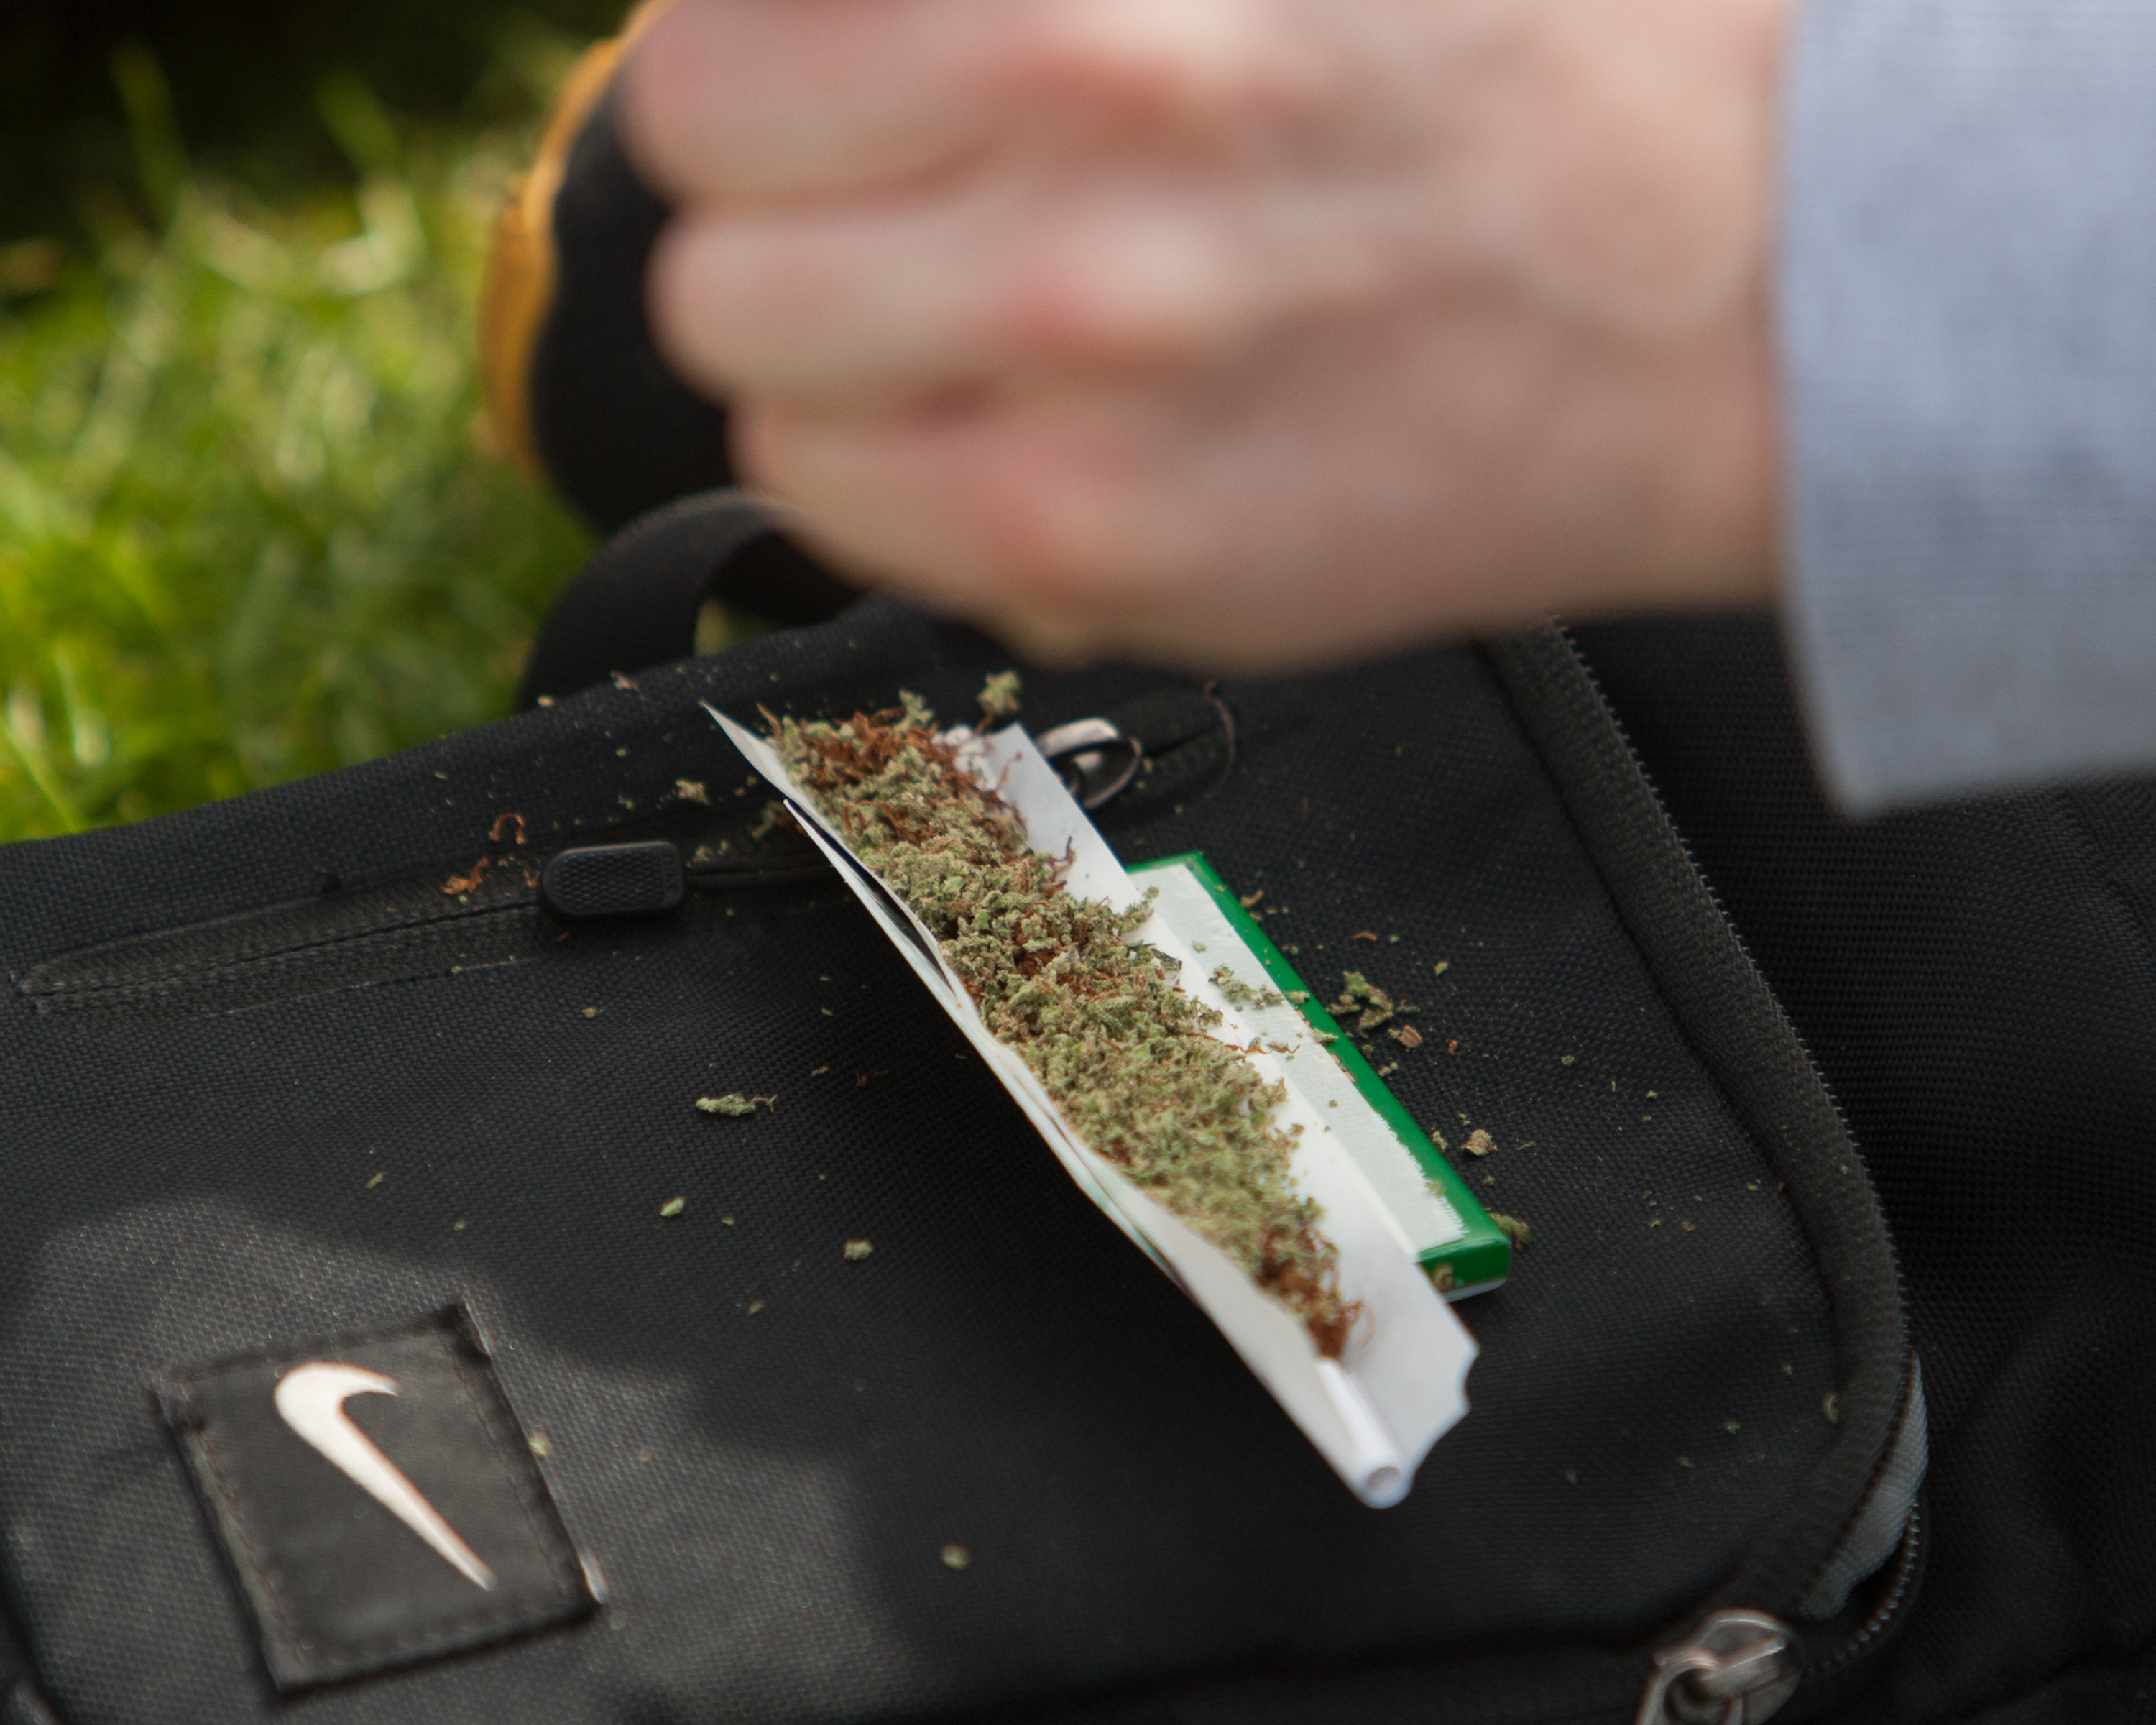 The annual London 420 Pro Cannabis Rally, Hyde Park, London, UK.